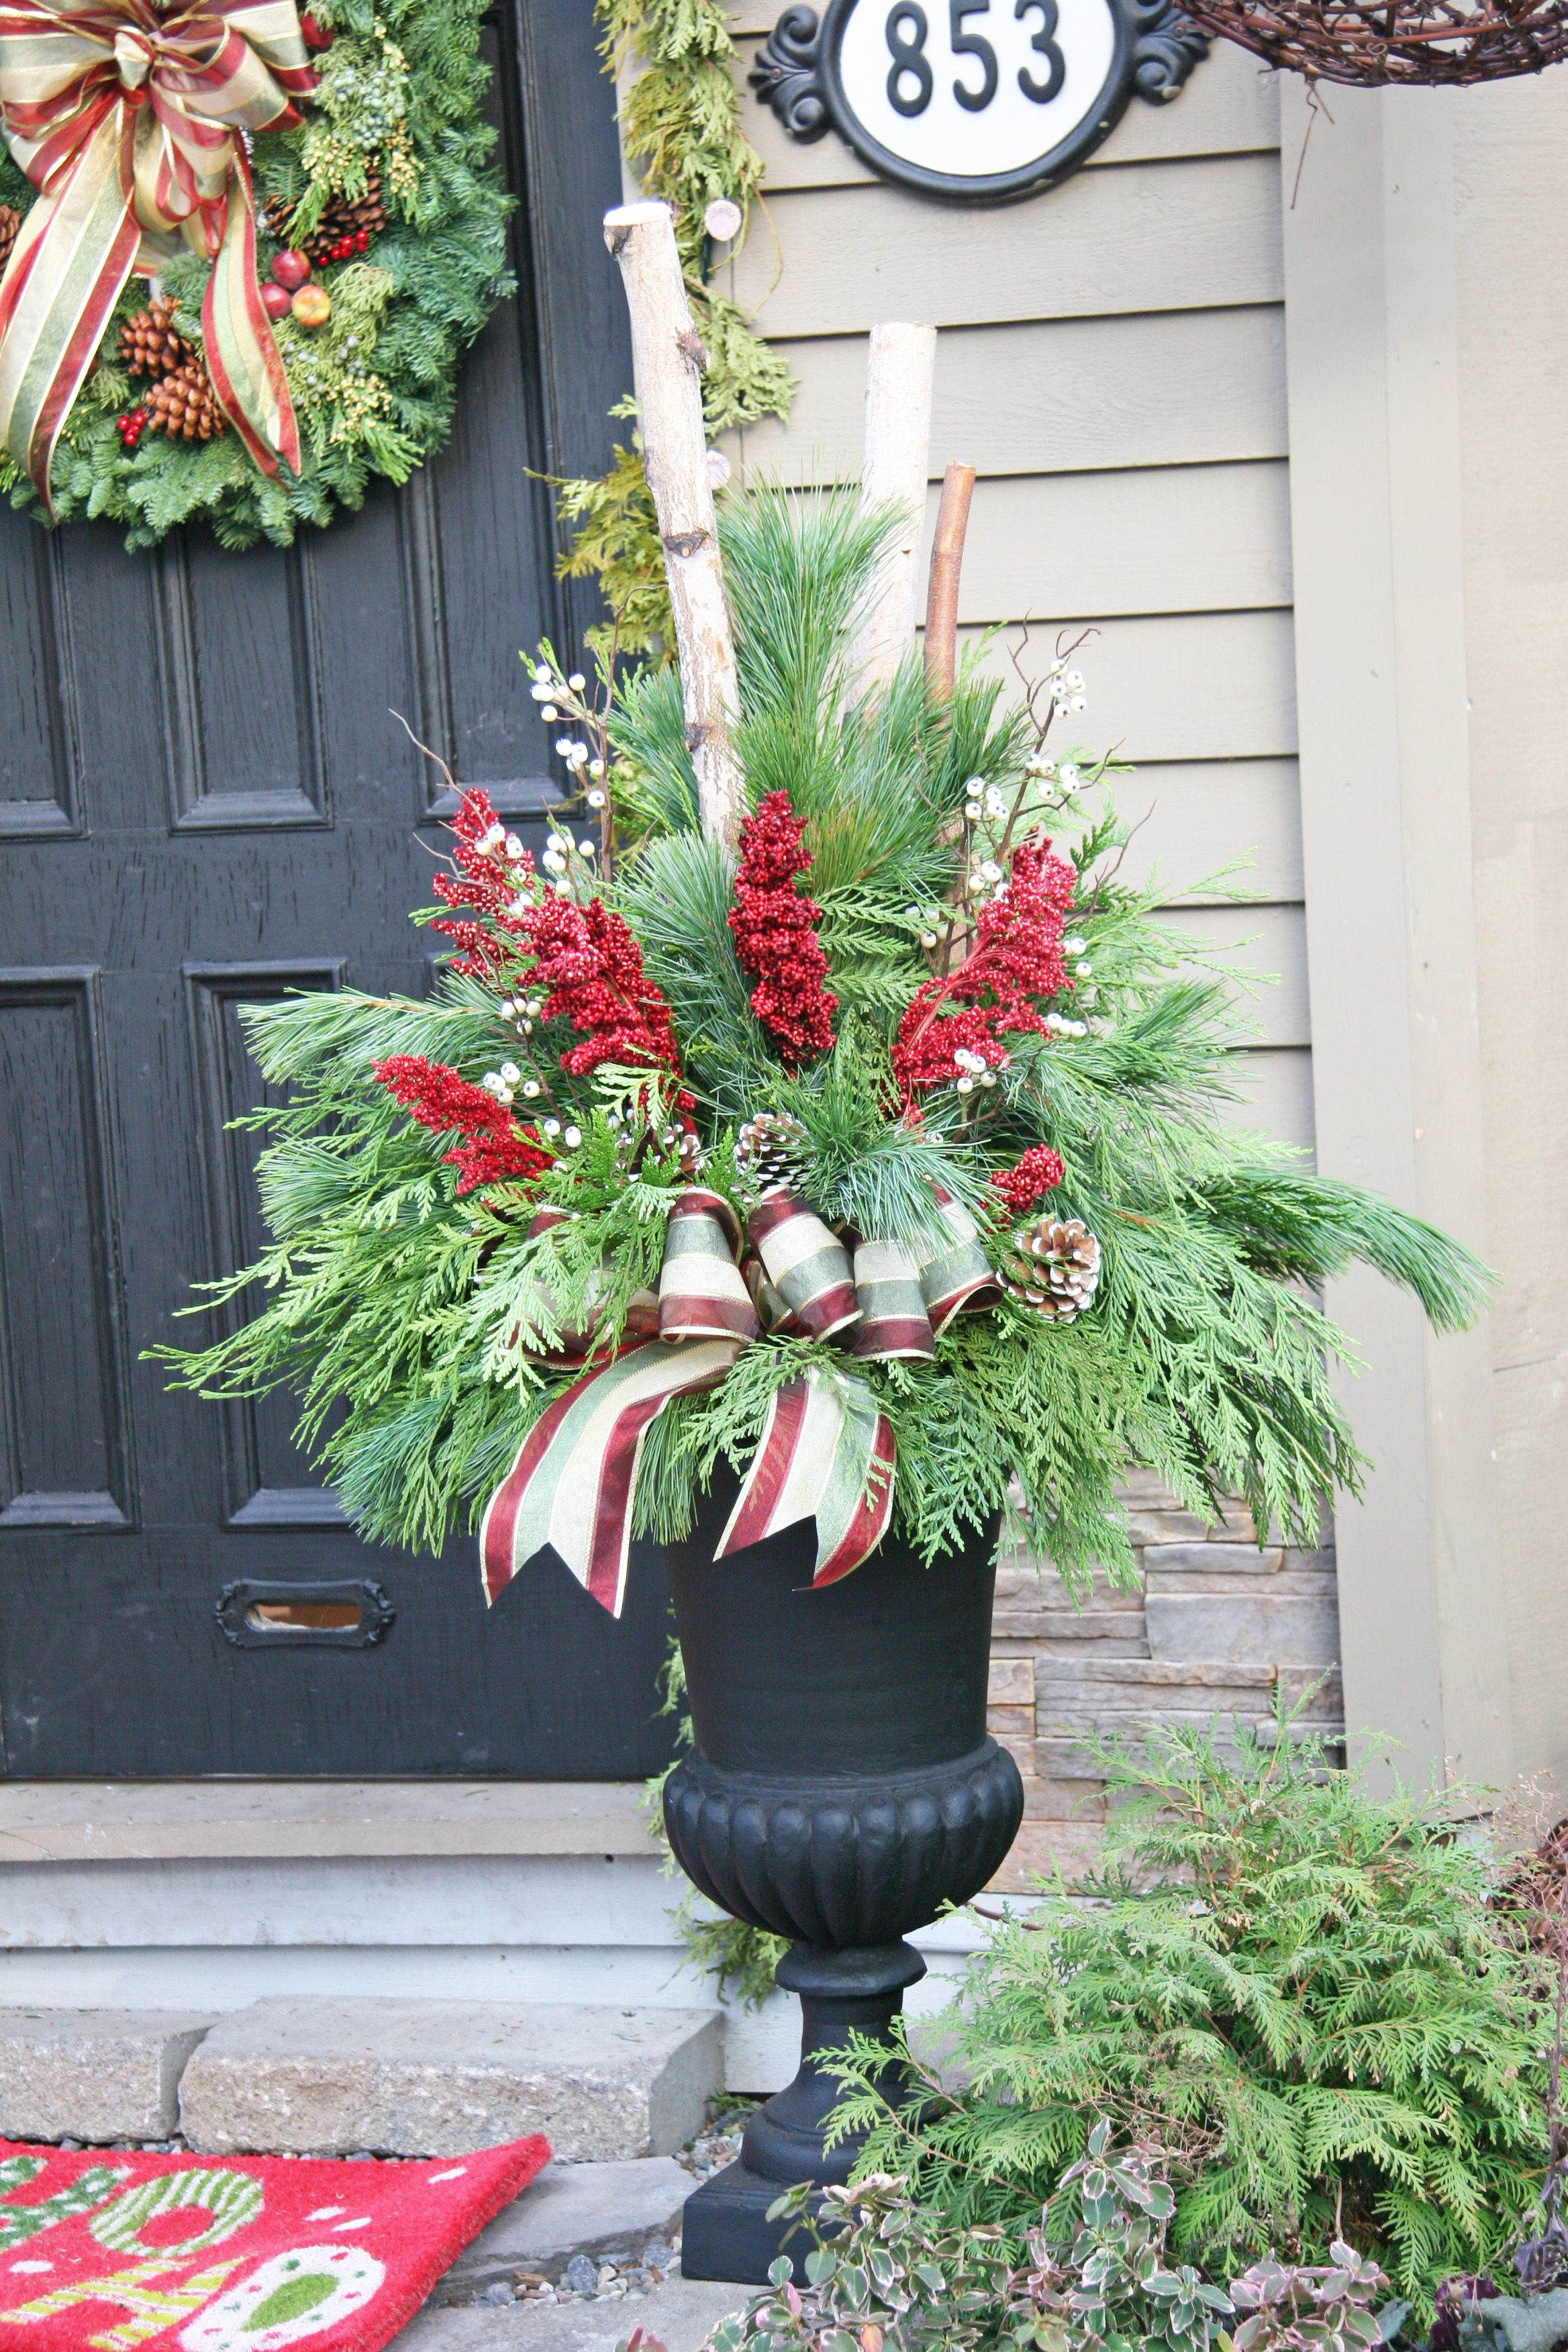 Outdoor Christmas Planter | Garden Potted planters | Pinterest ...